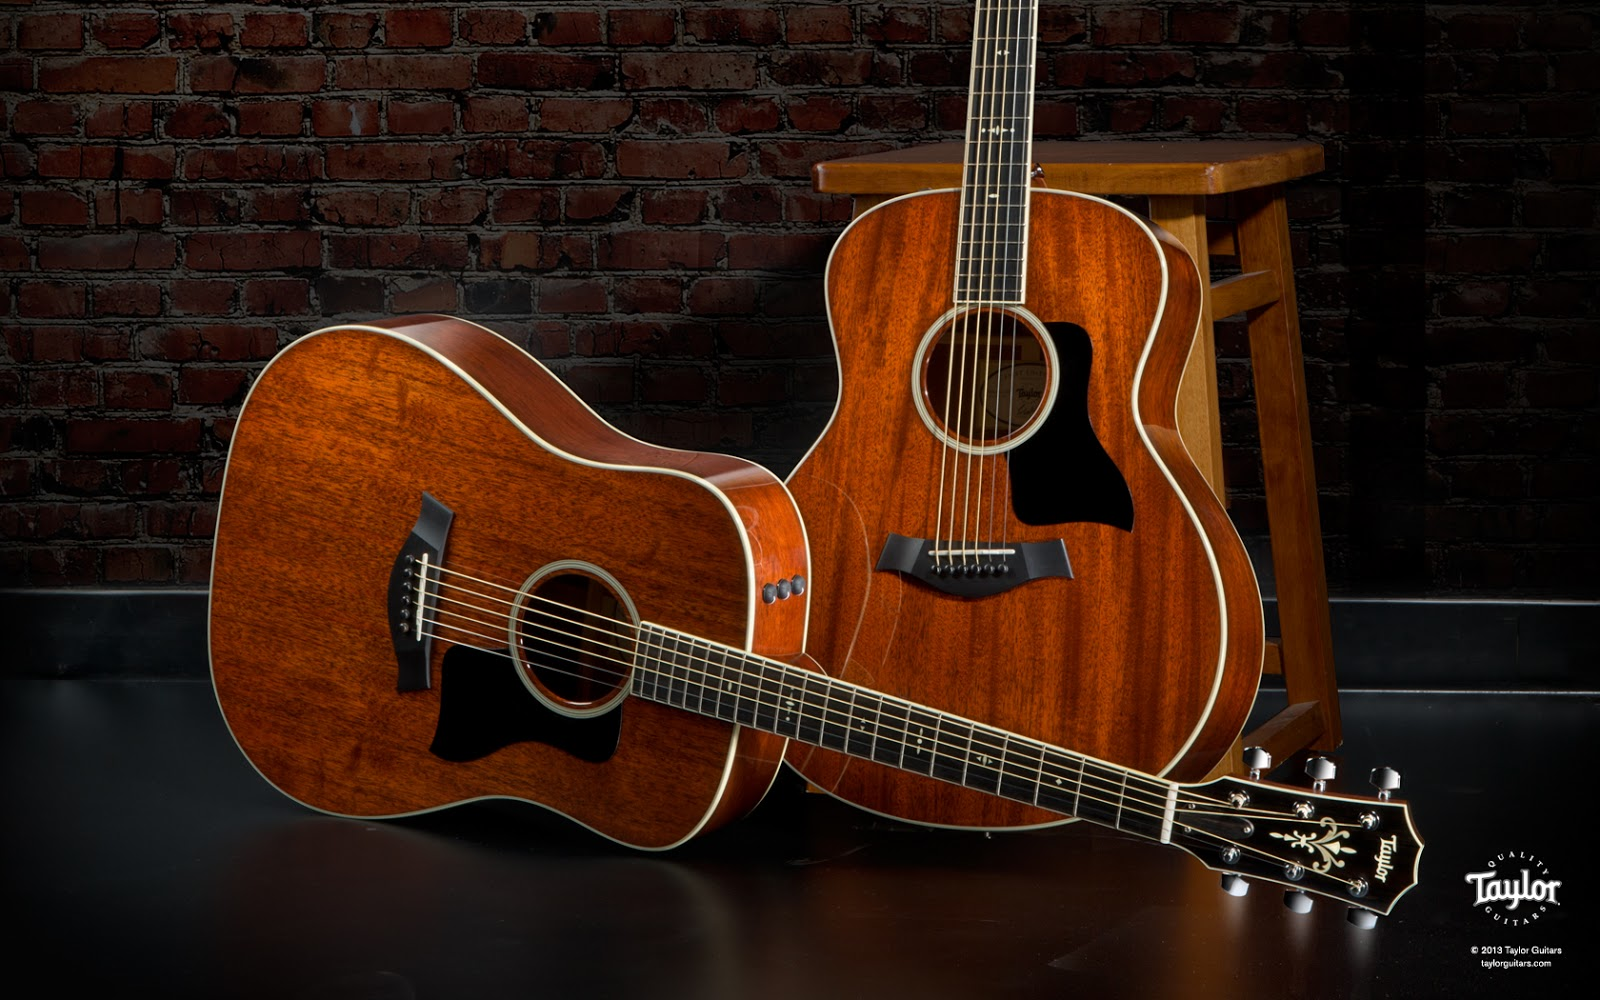 Taylor Guitars: Taylor Guitars - Wallpapers